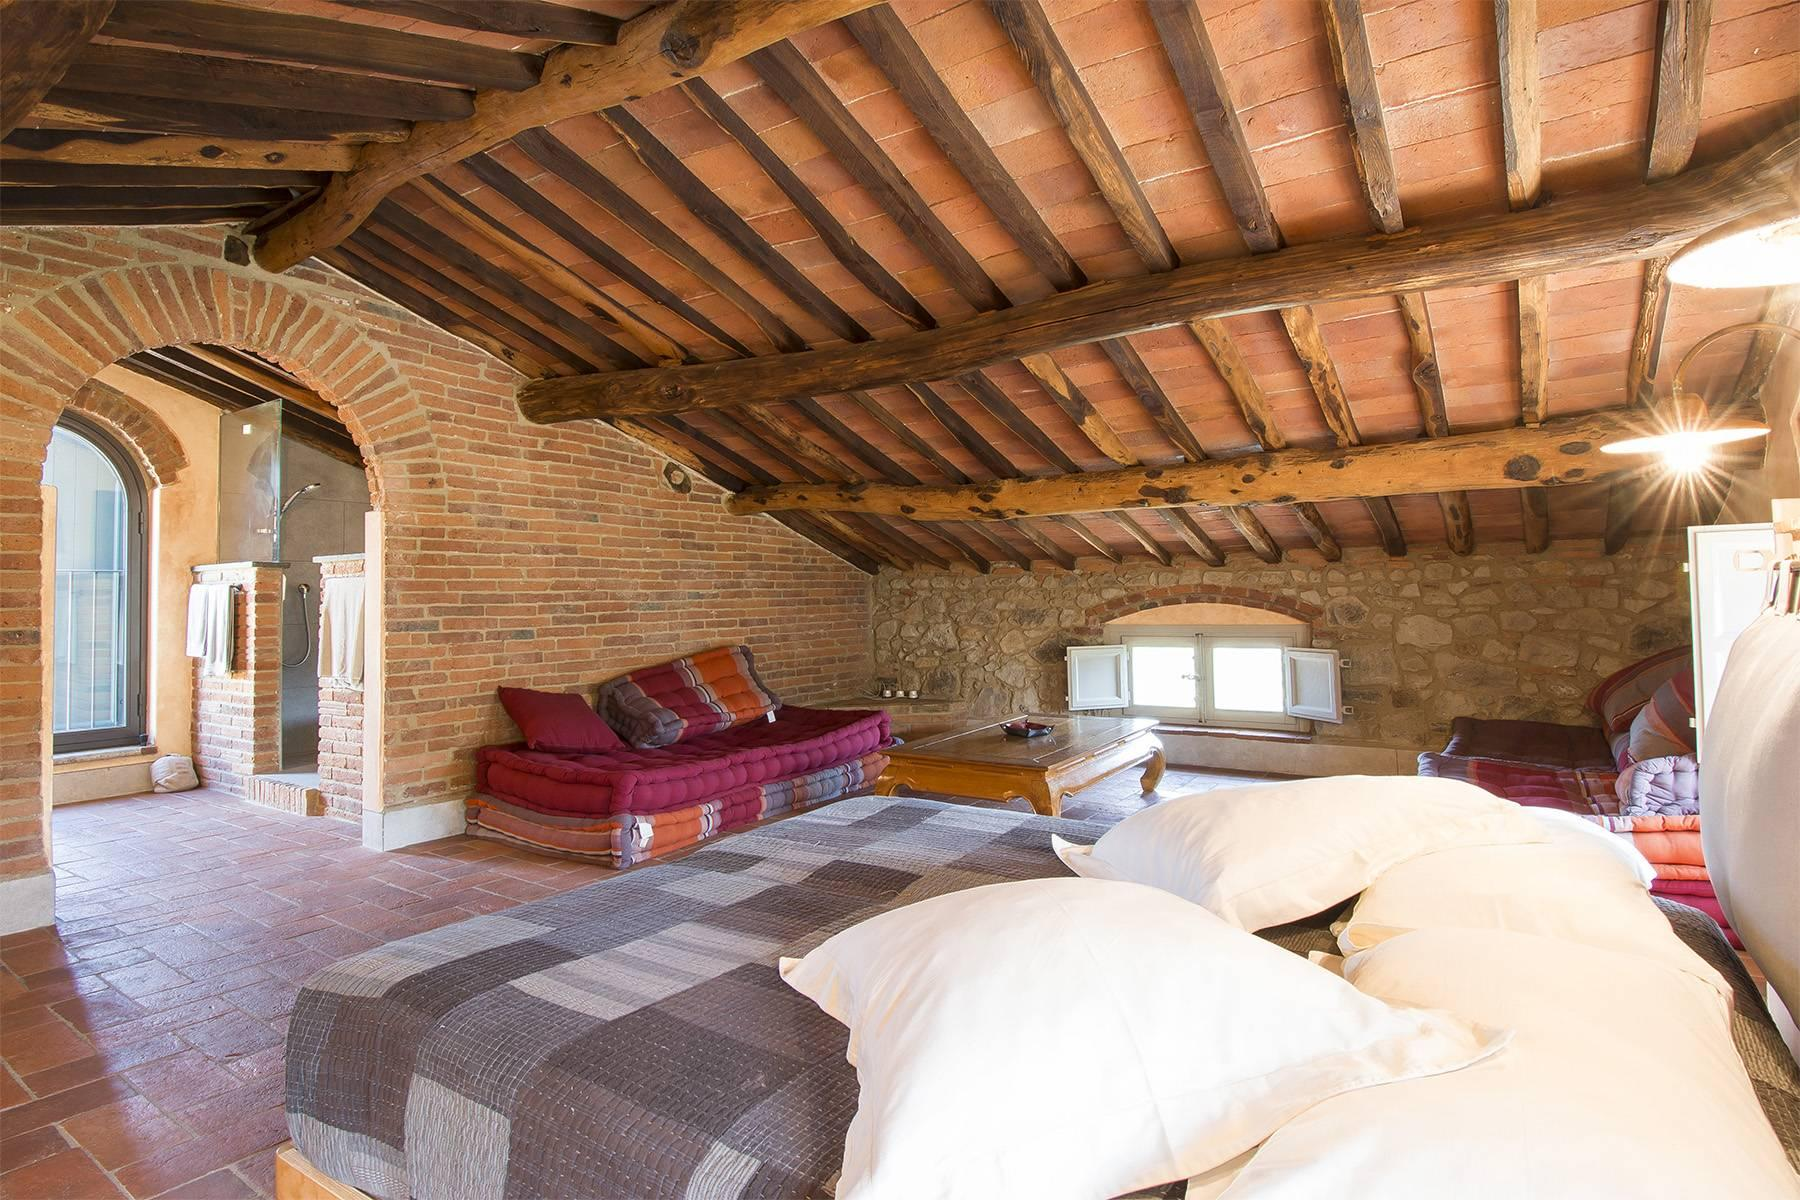 Stunning Country villa on the hills of Lucca with vineyard - 8